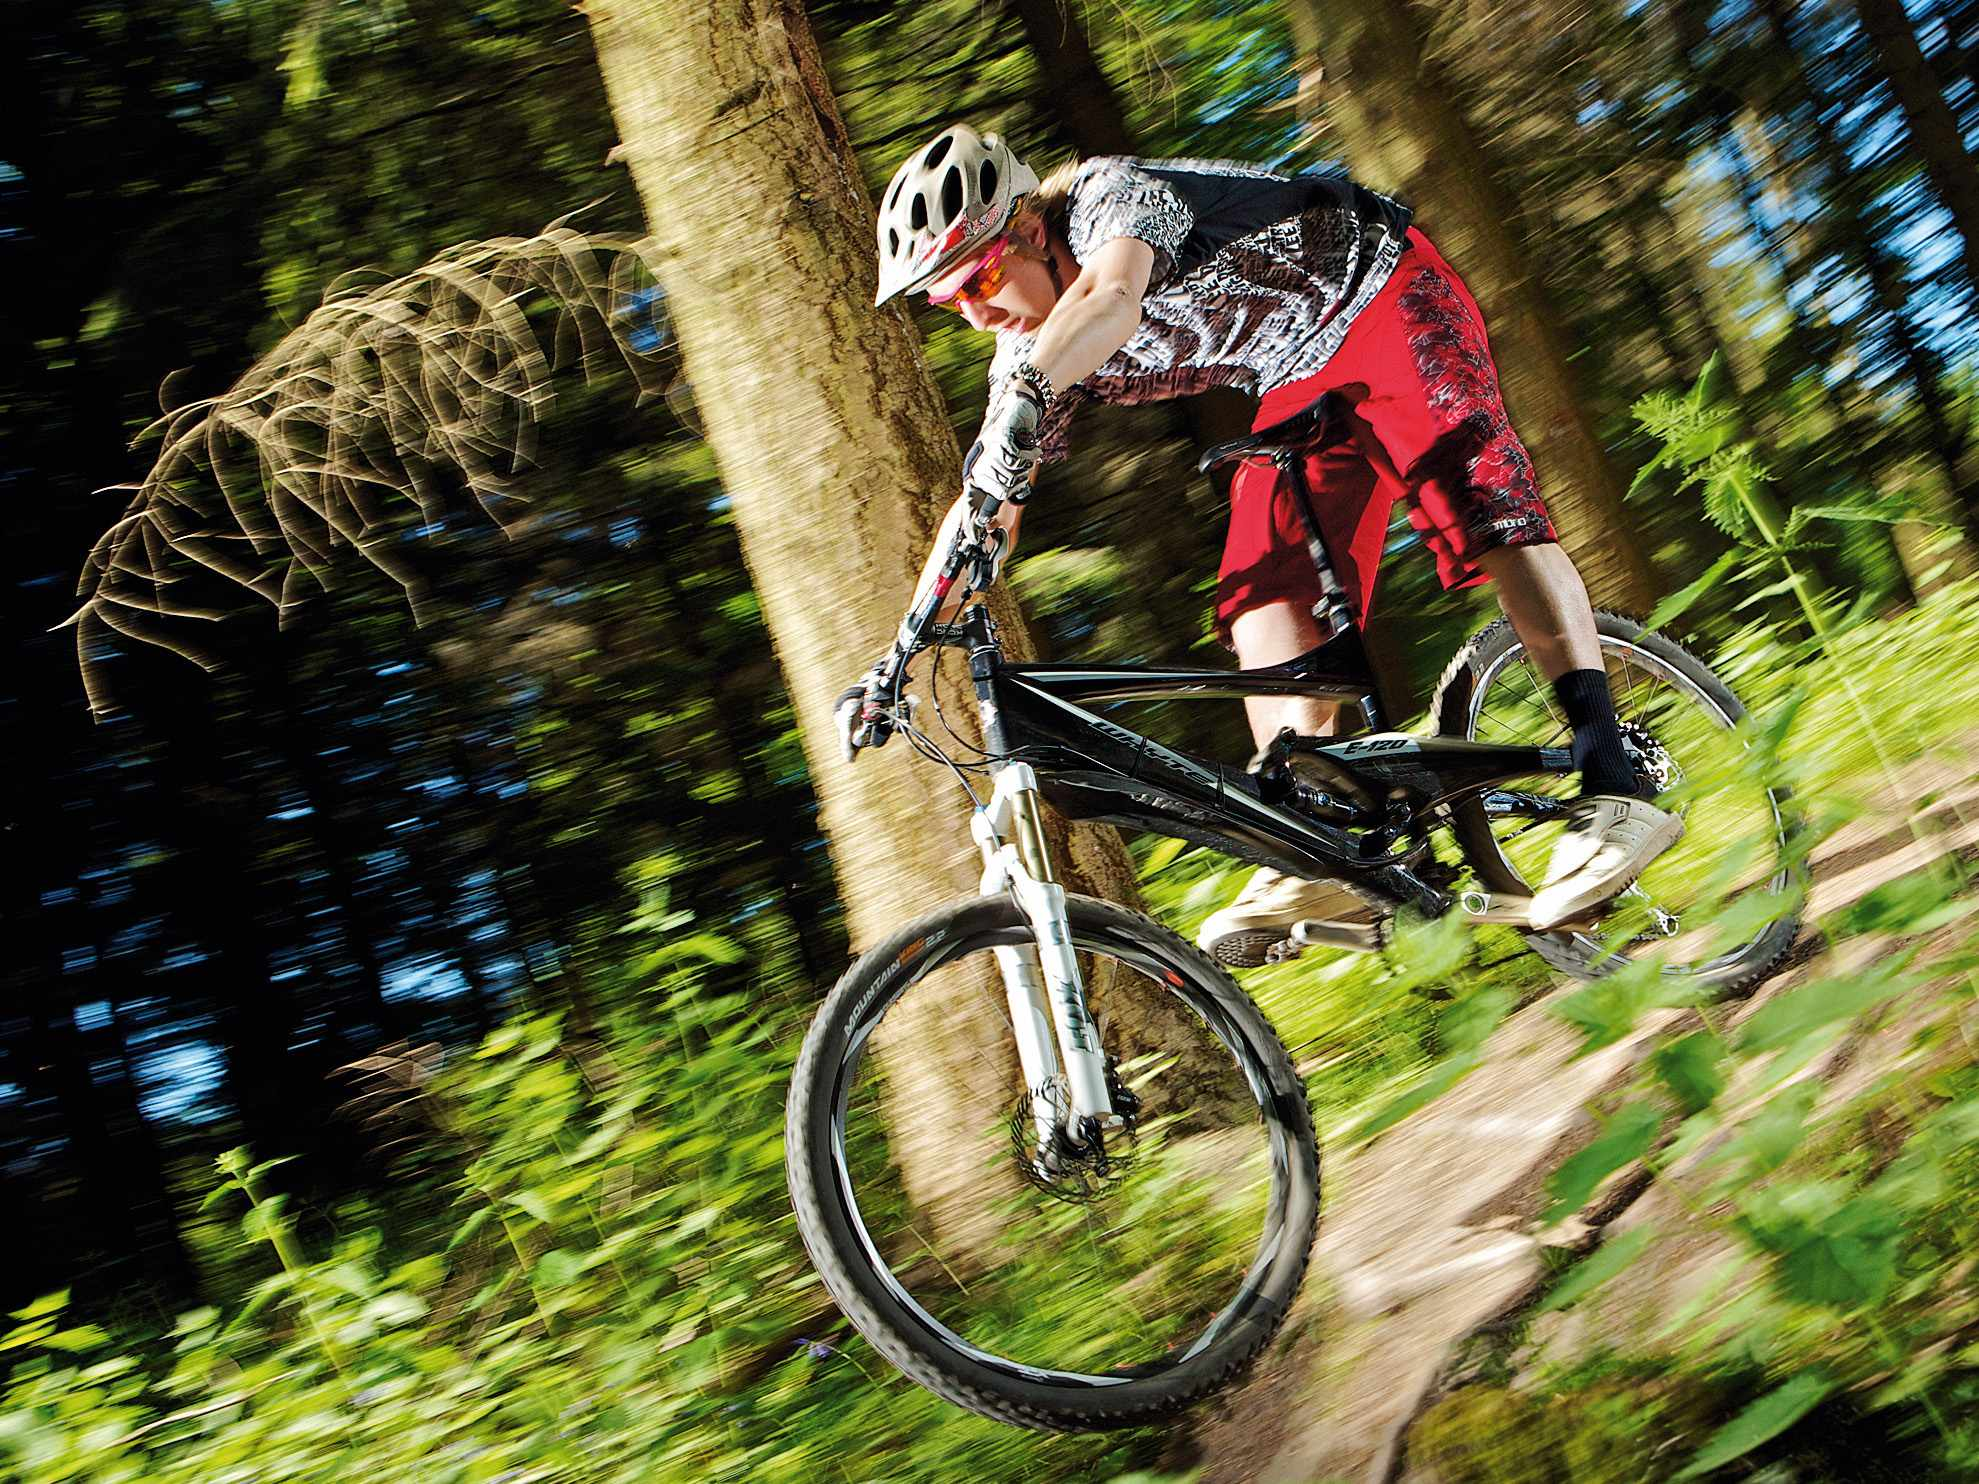 The E-120 is a lovely bike built for ripping in UK conditions